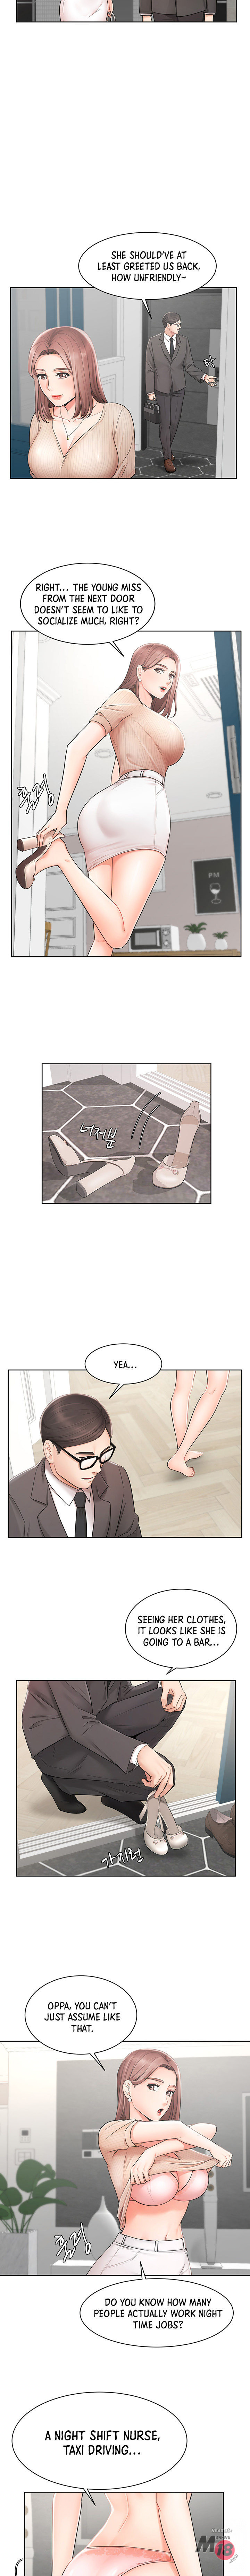 Sold out girl Engsub Chapter 2 - Mangajb.de